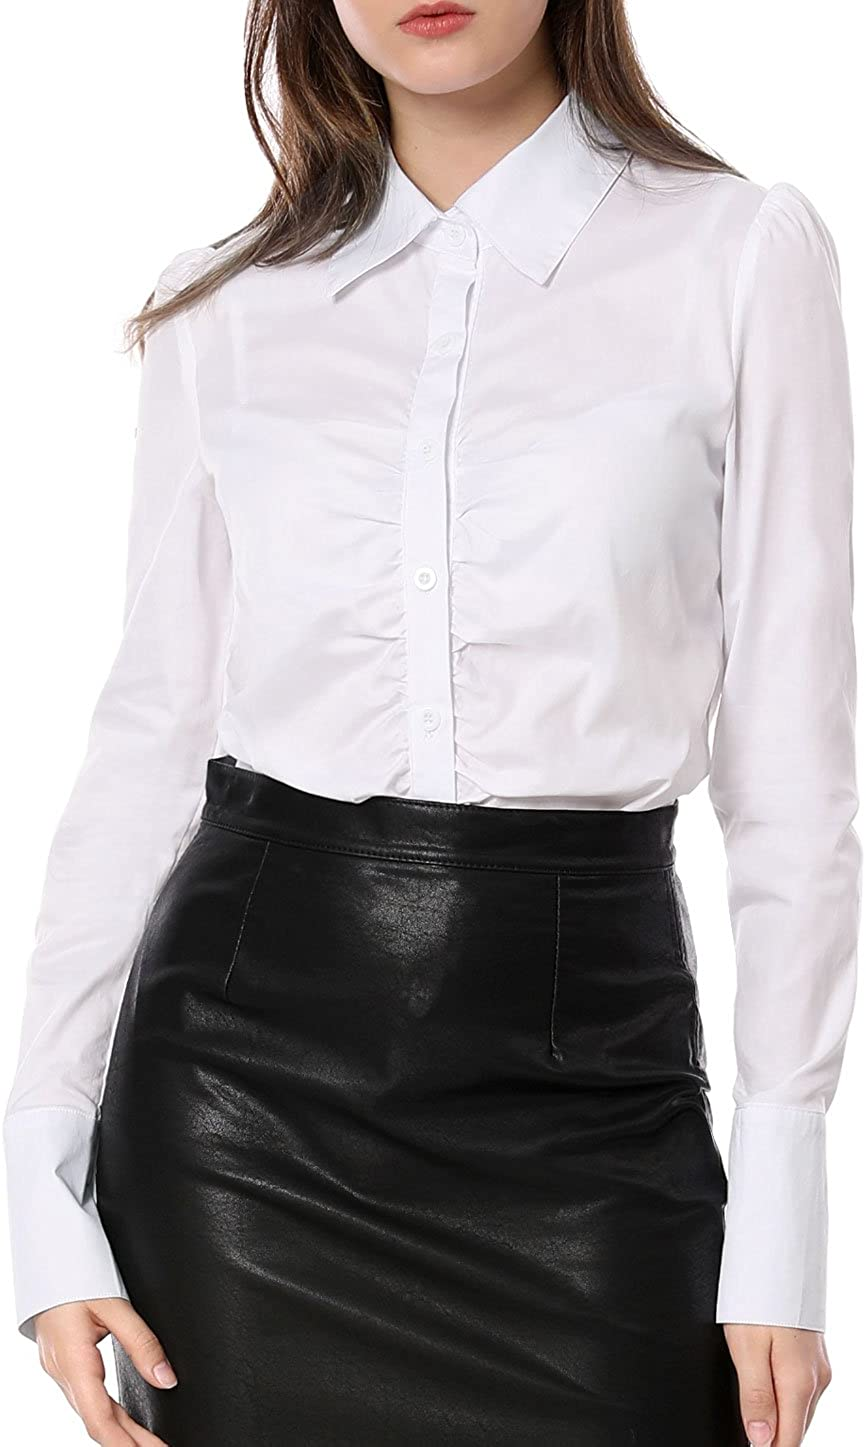 Allegra K Women's Long Sleeve White Office Shirt Button Down Work Ruched Front Tops